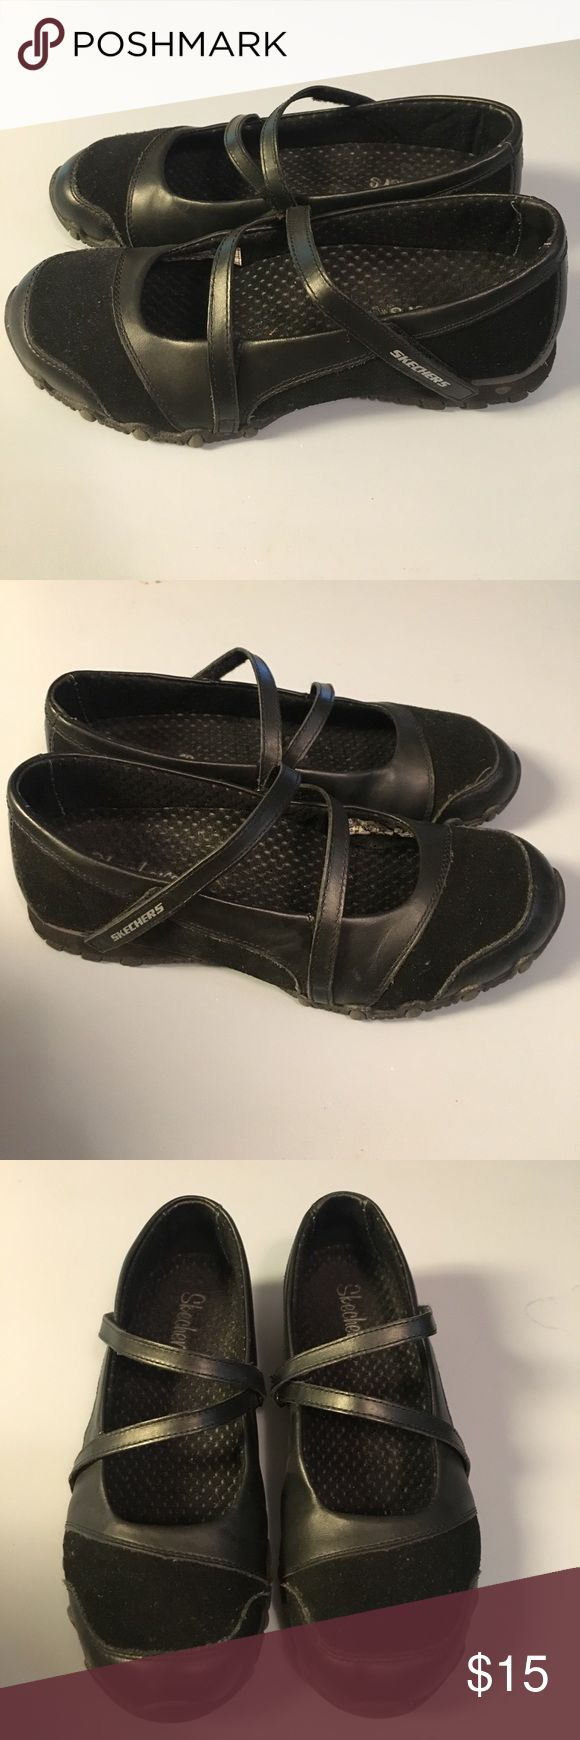 """Skechers Bikers step up leather shoes Skechers leather and suede Bikers Step Up shoes feature adjustable Velcro ankle straps and rubber sole. Slight 1/2"""" heel and supportive insole. EUC. Skechers Shoes"""